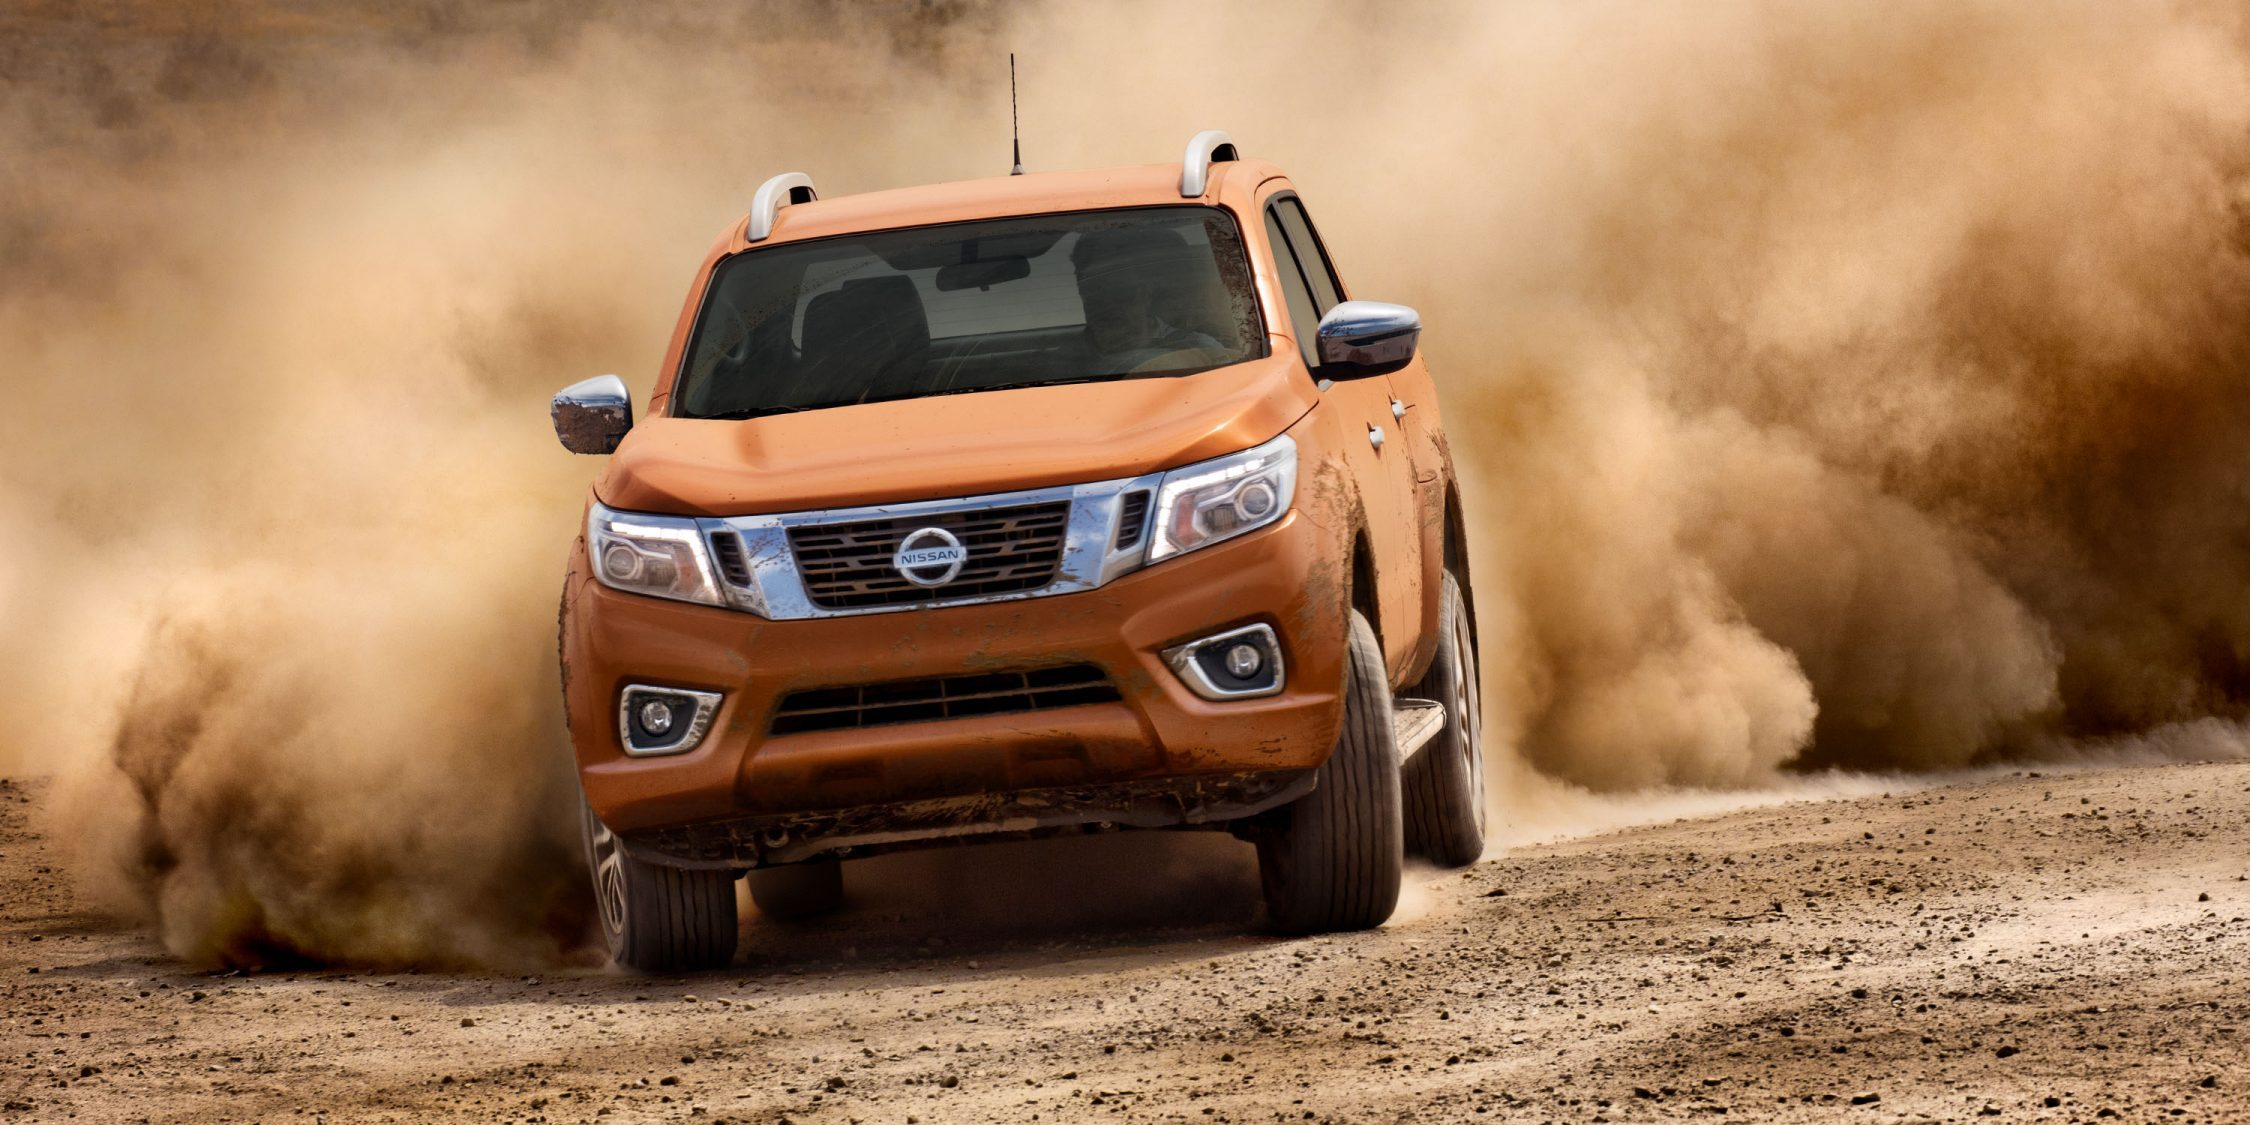 Nissan Navara kicking up dust on dirt road